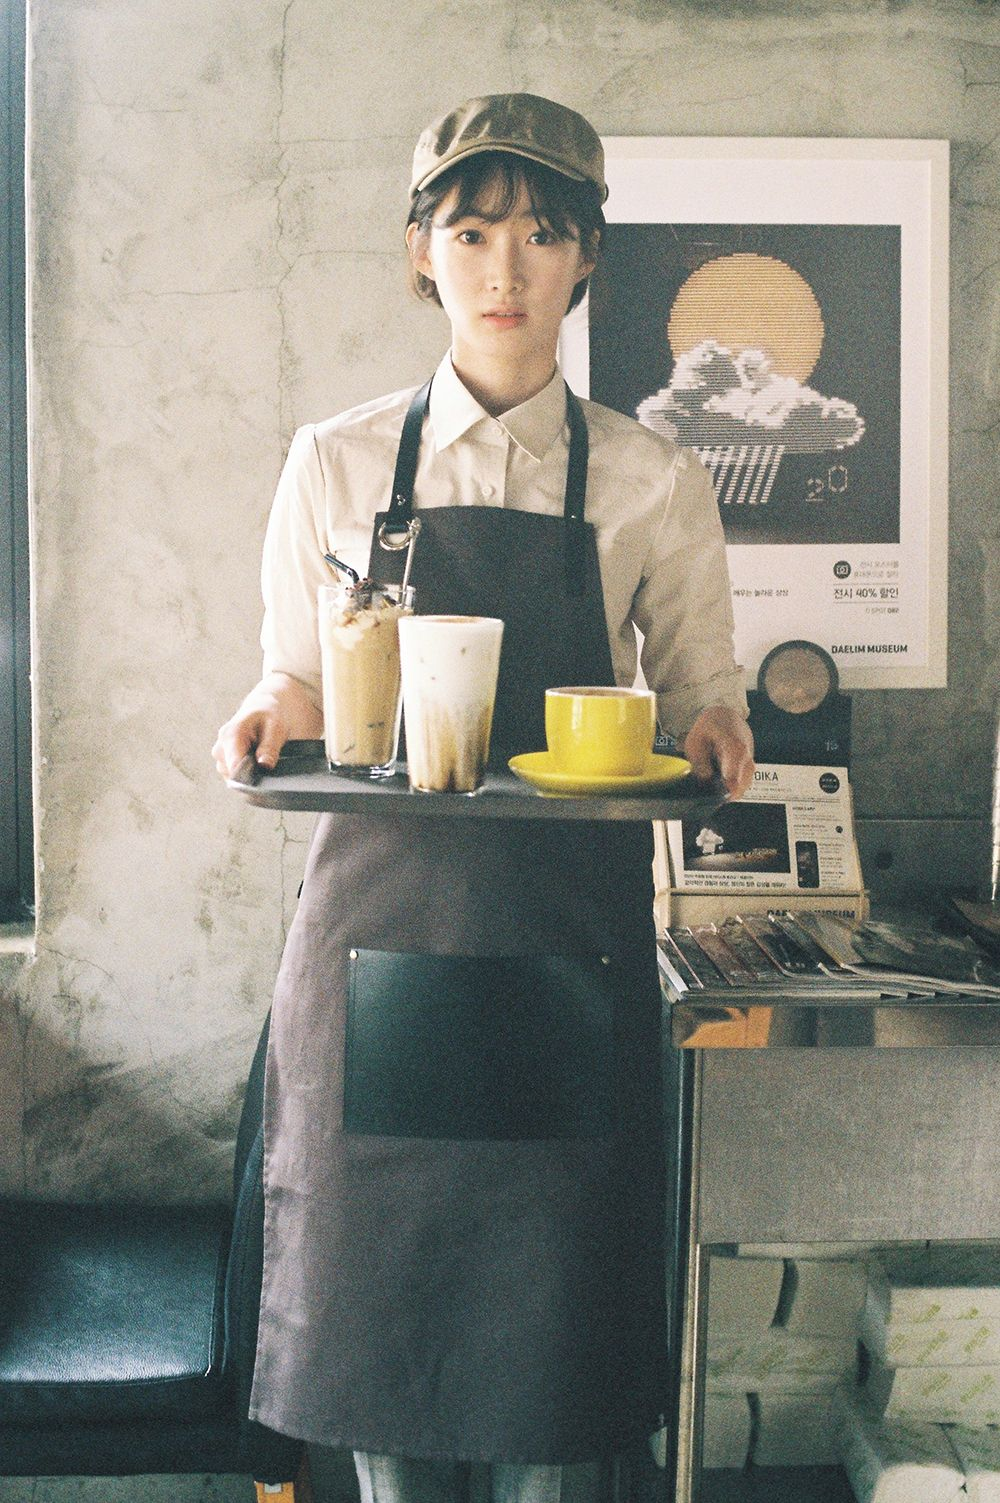 We Are Trying Our Best So They Can Maintain Their Best Condition Working Wear Group Amont Cafe Uniform Coffee Shop Aesthetic Coffee Shop Uniform